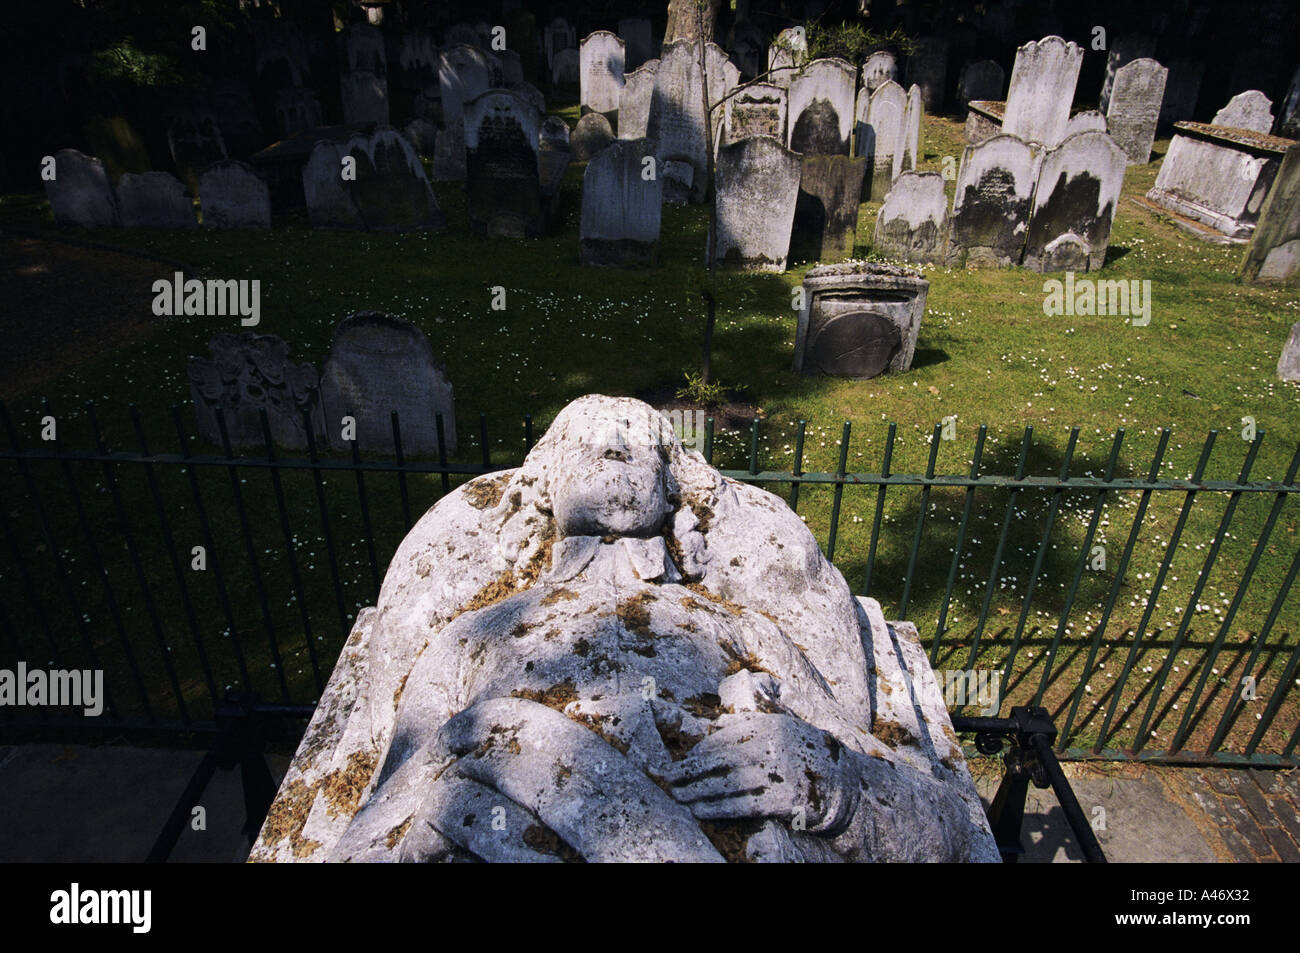 The grave of John Bunyan author of 'The Pilgrim's Progress' in Bunhill Fields London UK - Stock Image